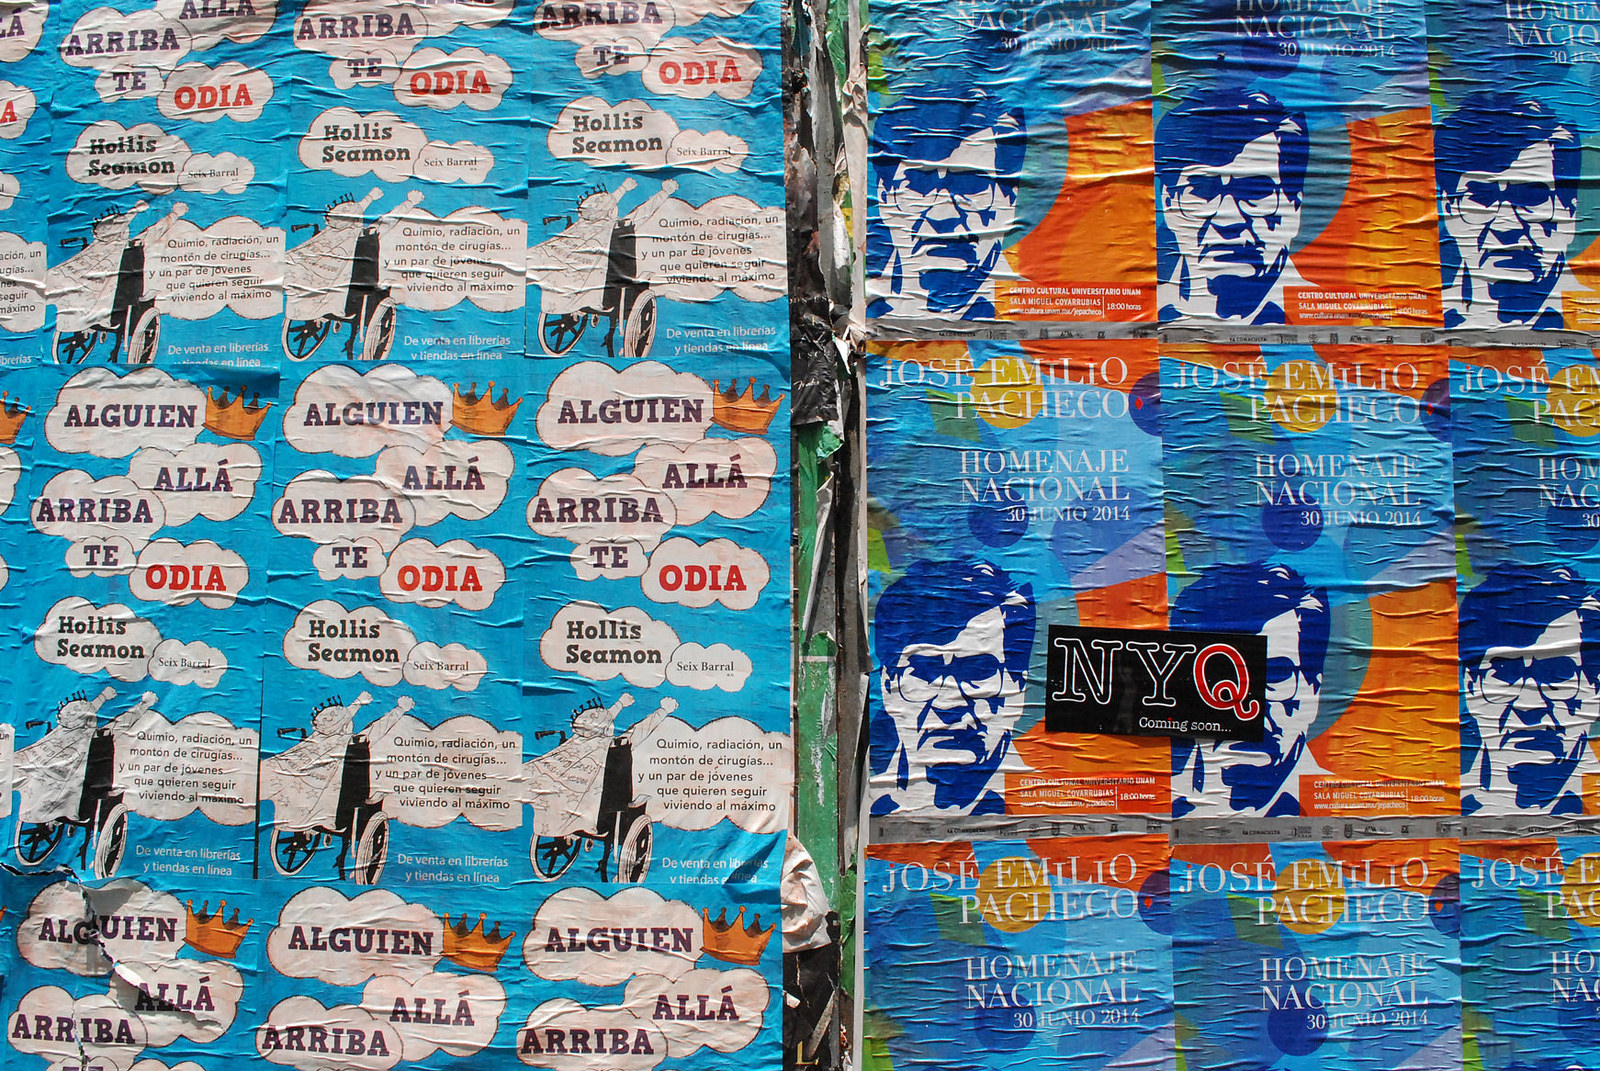 Posters, Condesa | © E. Krall/Flickr